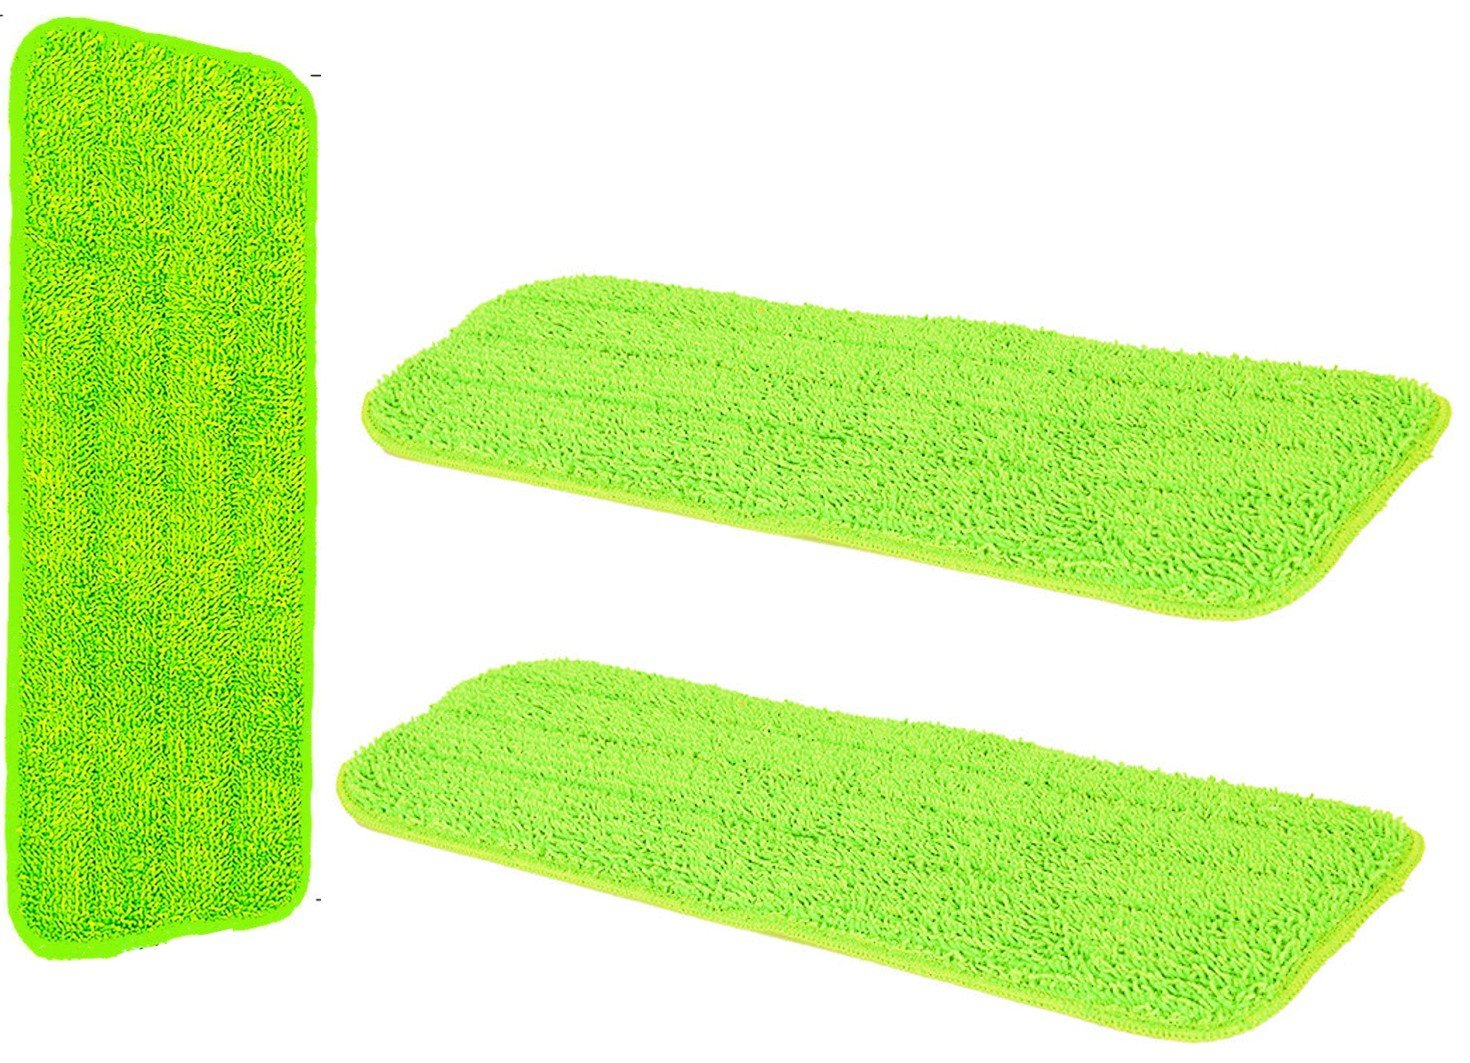 Microfibre Laminate Floor Mop Replacement Pad Cloths - Spray Mop Refill Replacement Head Cloth Refil Pad - Pack of 3 Machine Washable Reusable High Absorbent Cleaning Pads - Suits and Fits Most Spray Mops 42cm x 14cm - By The Dustpan and Brush Store